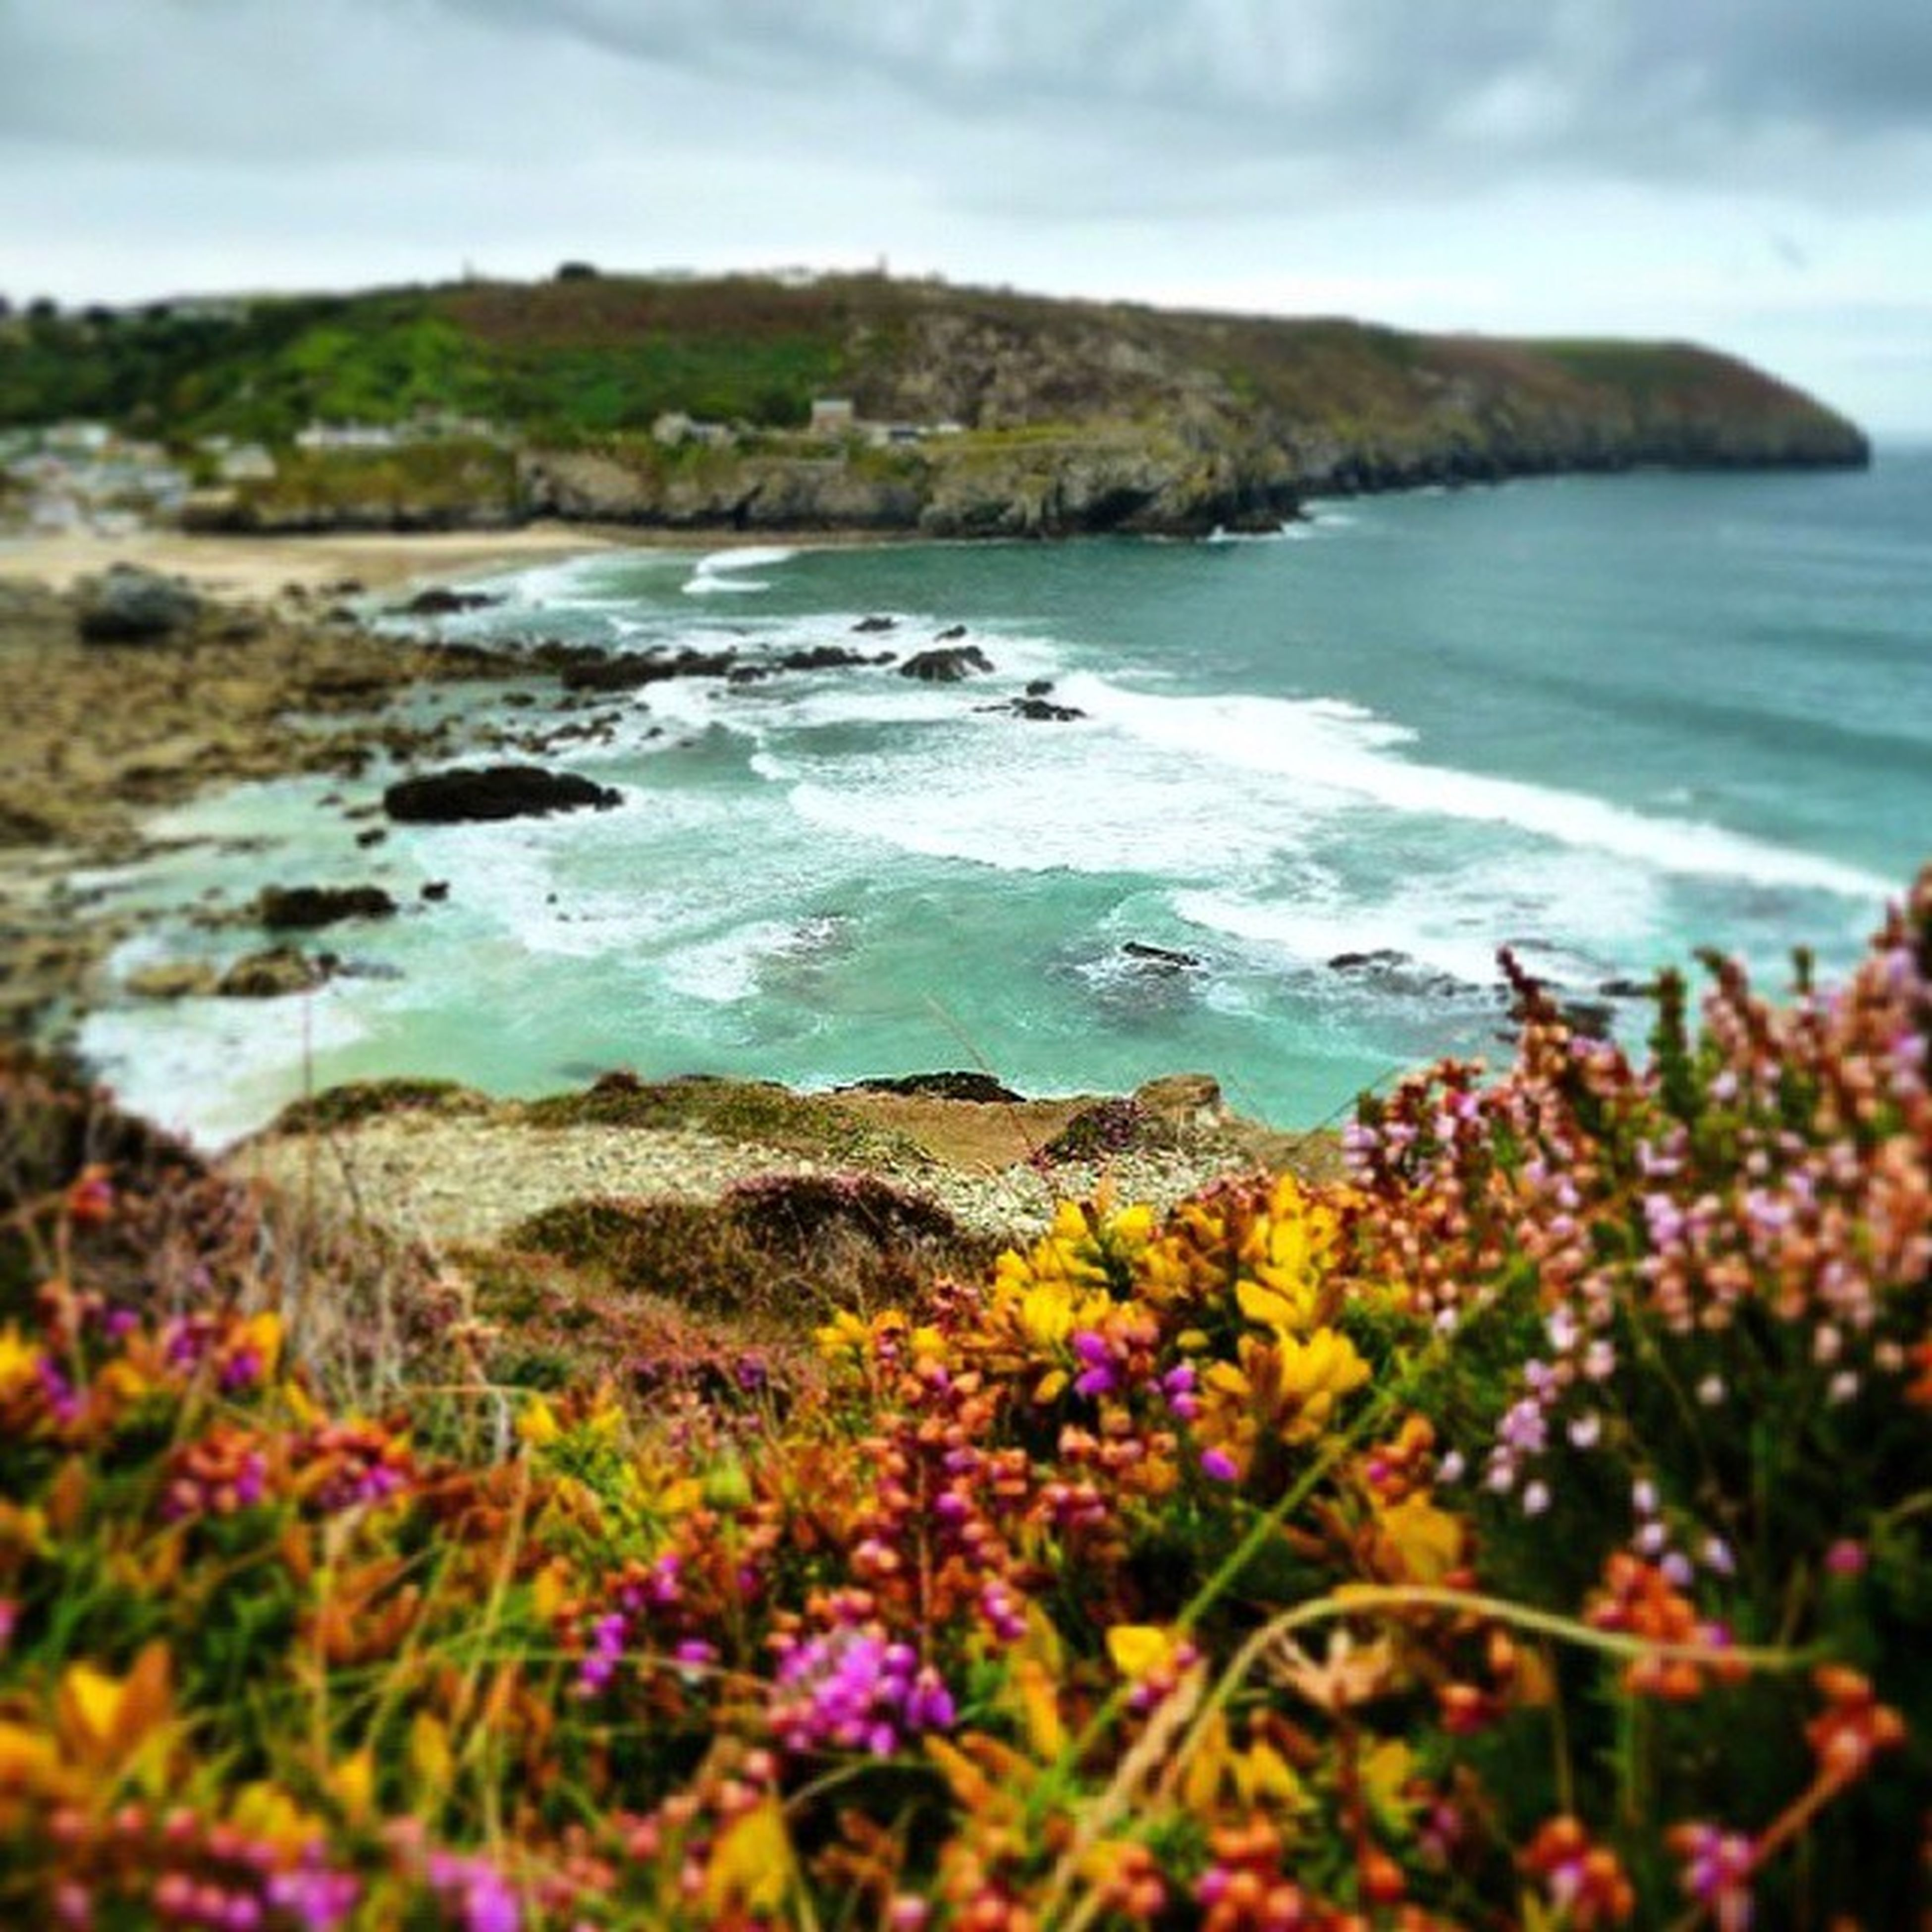 flower, water, beauty in nature, sea, tranquil scene, nature, scenics, tranquility, plant, growth, sky, mountain, rock - object, freshness, beach, wildflower, day, focus on foreground, fragility, outdoors